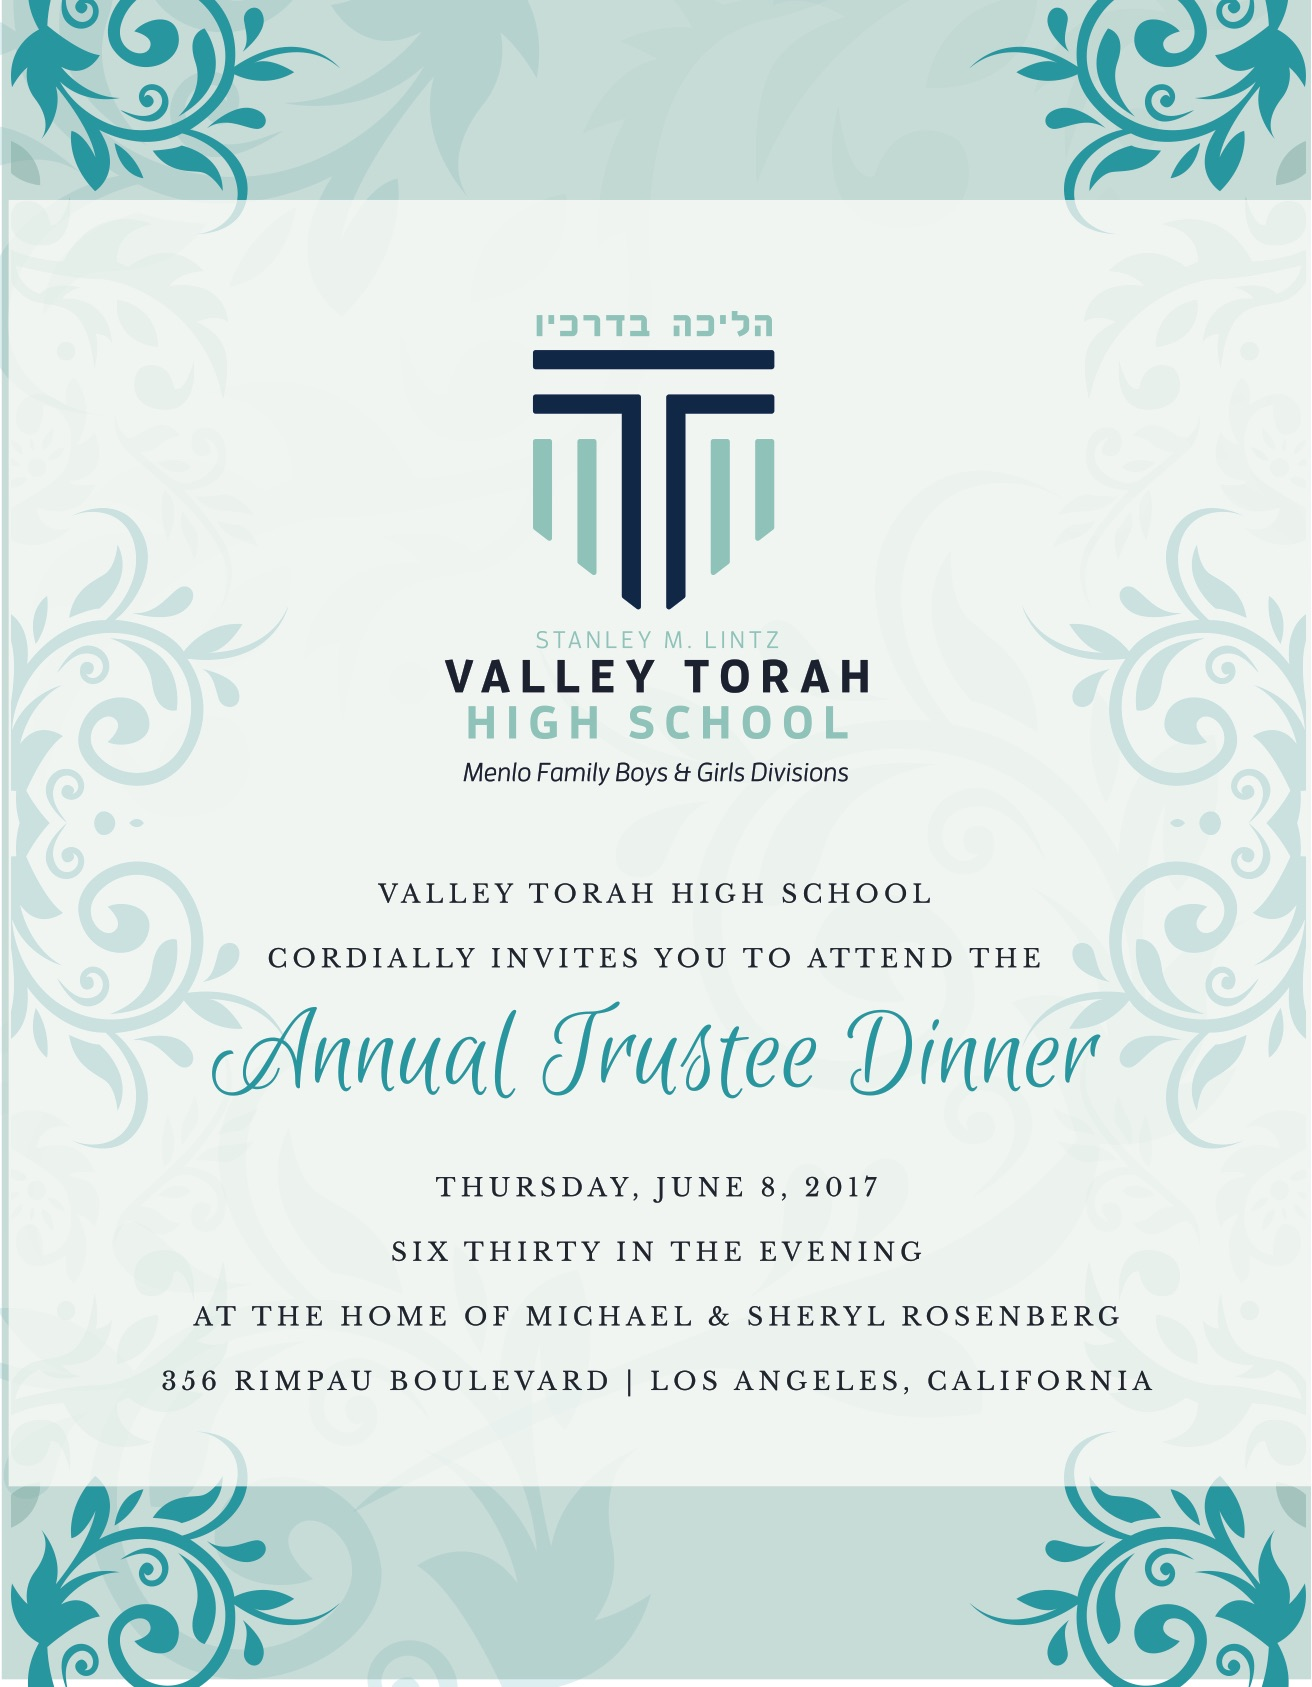 VTHS Trustee Invitation flyer.jpg